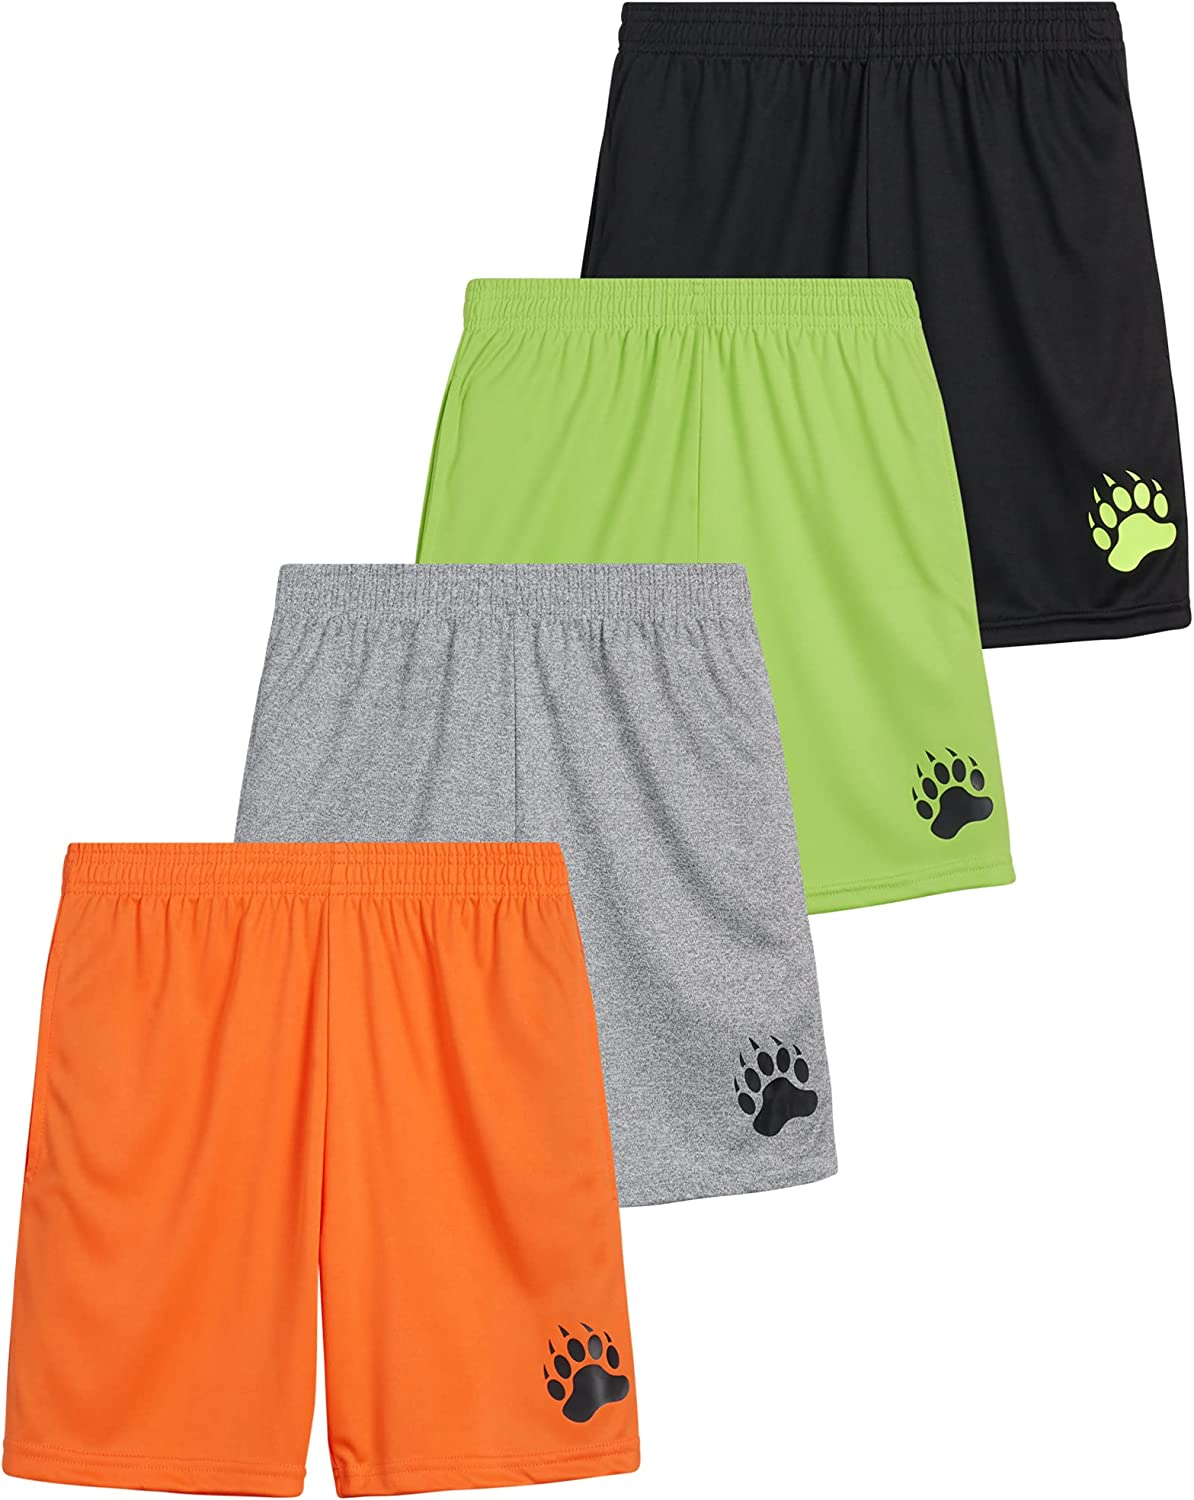 Black Bear Boys' Active Shorts – 4 Pack Performance Dry-Fit Athletic Solid Shorts (Big Boy)